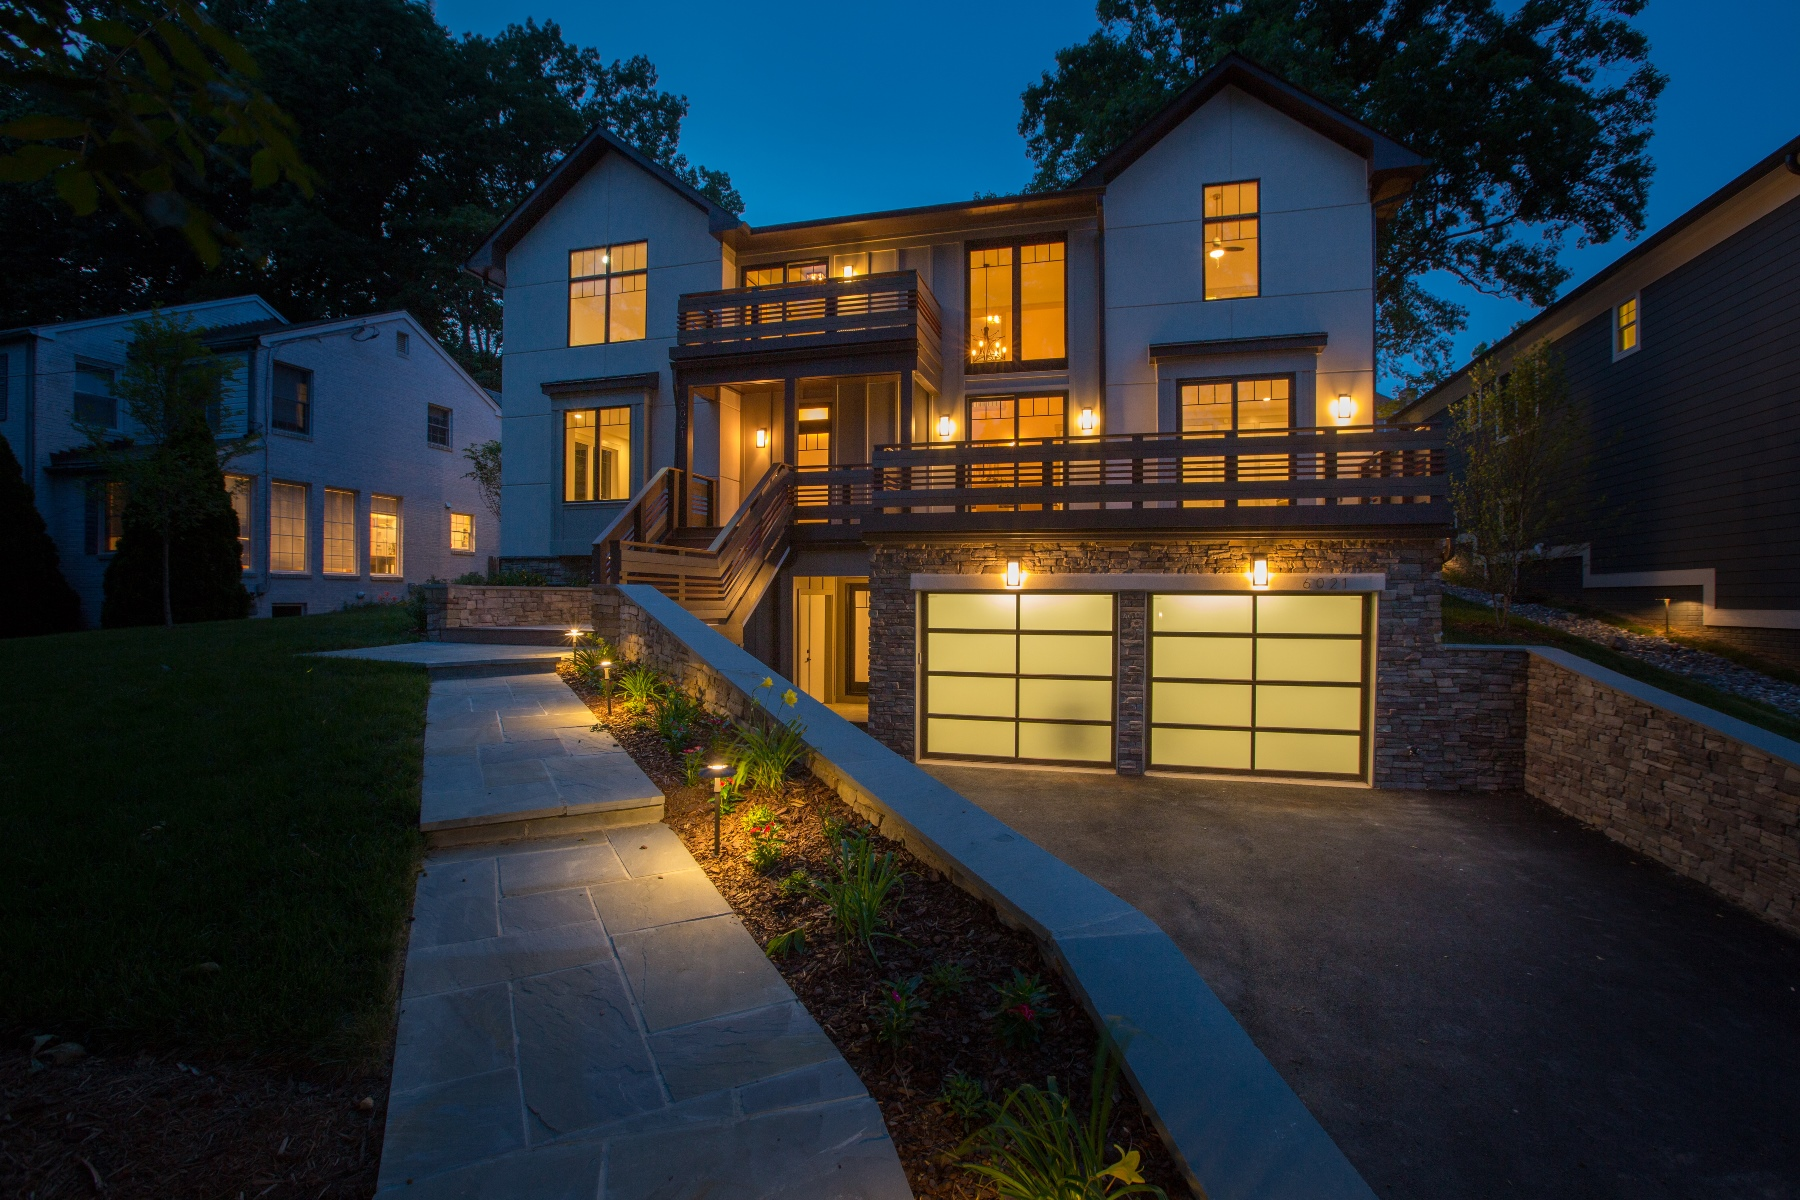 Single Family Home for Sale at 6021 Walhonding Road, Bethesda 6021 Walhonding Rd Bethesda, Maryland 20816 United States